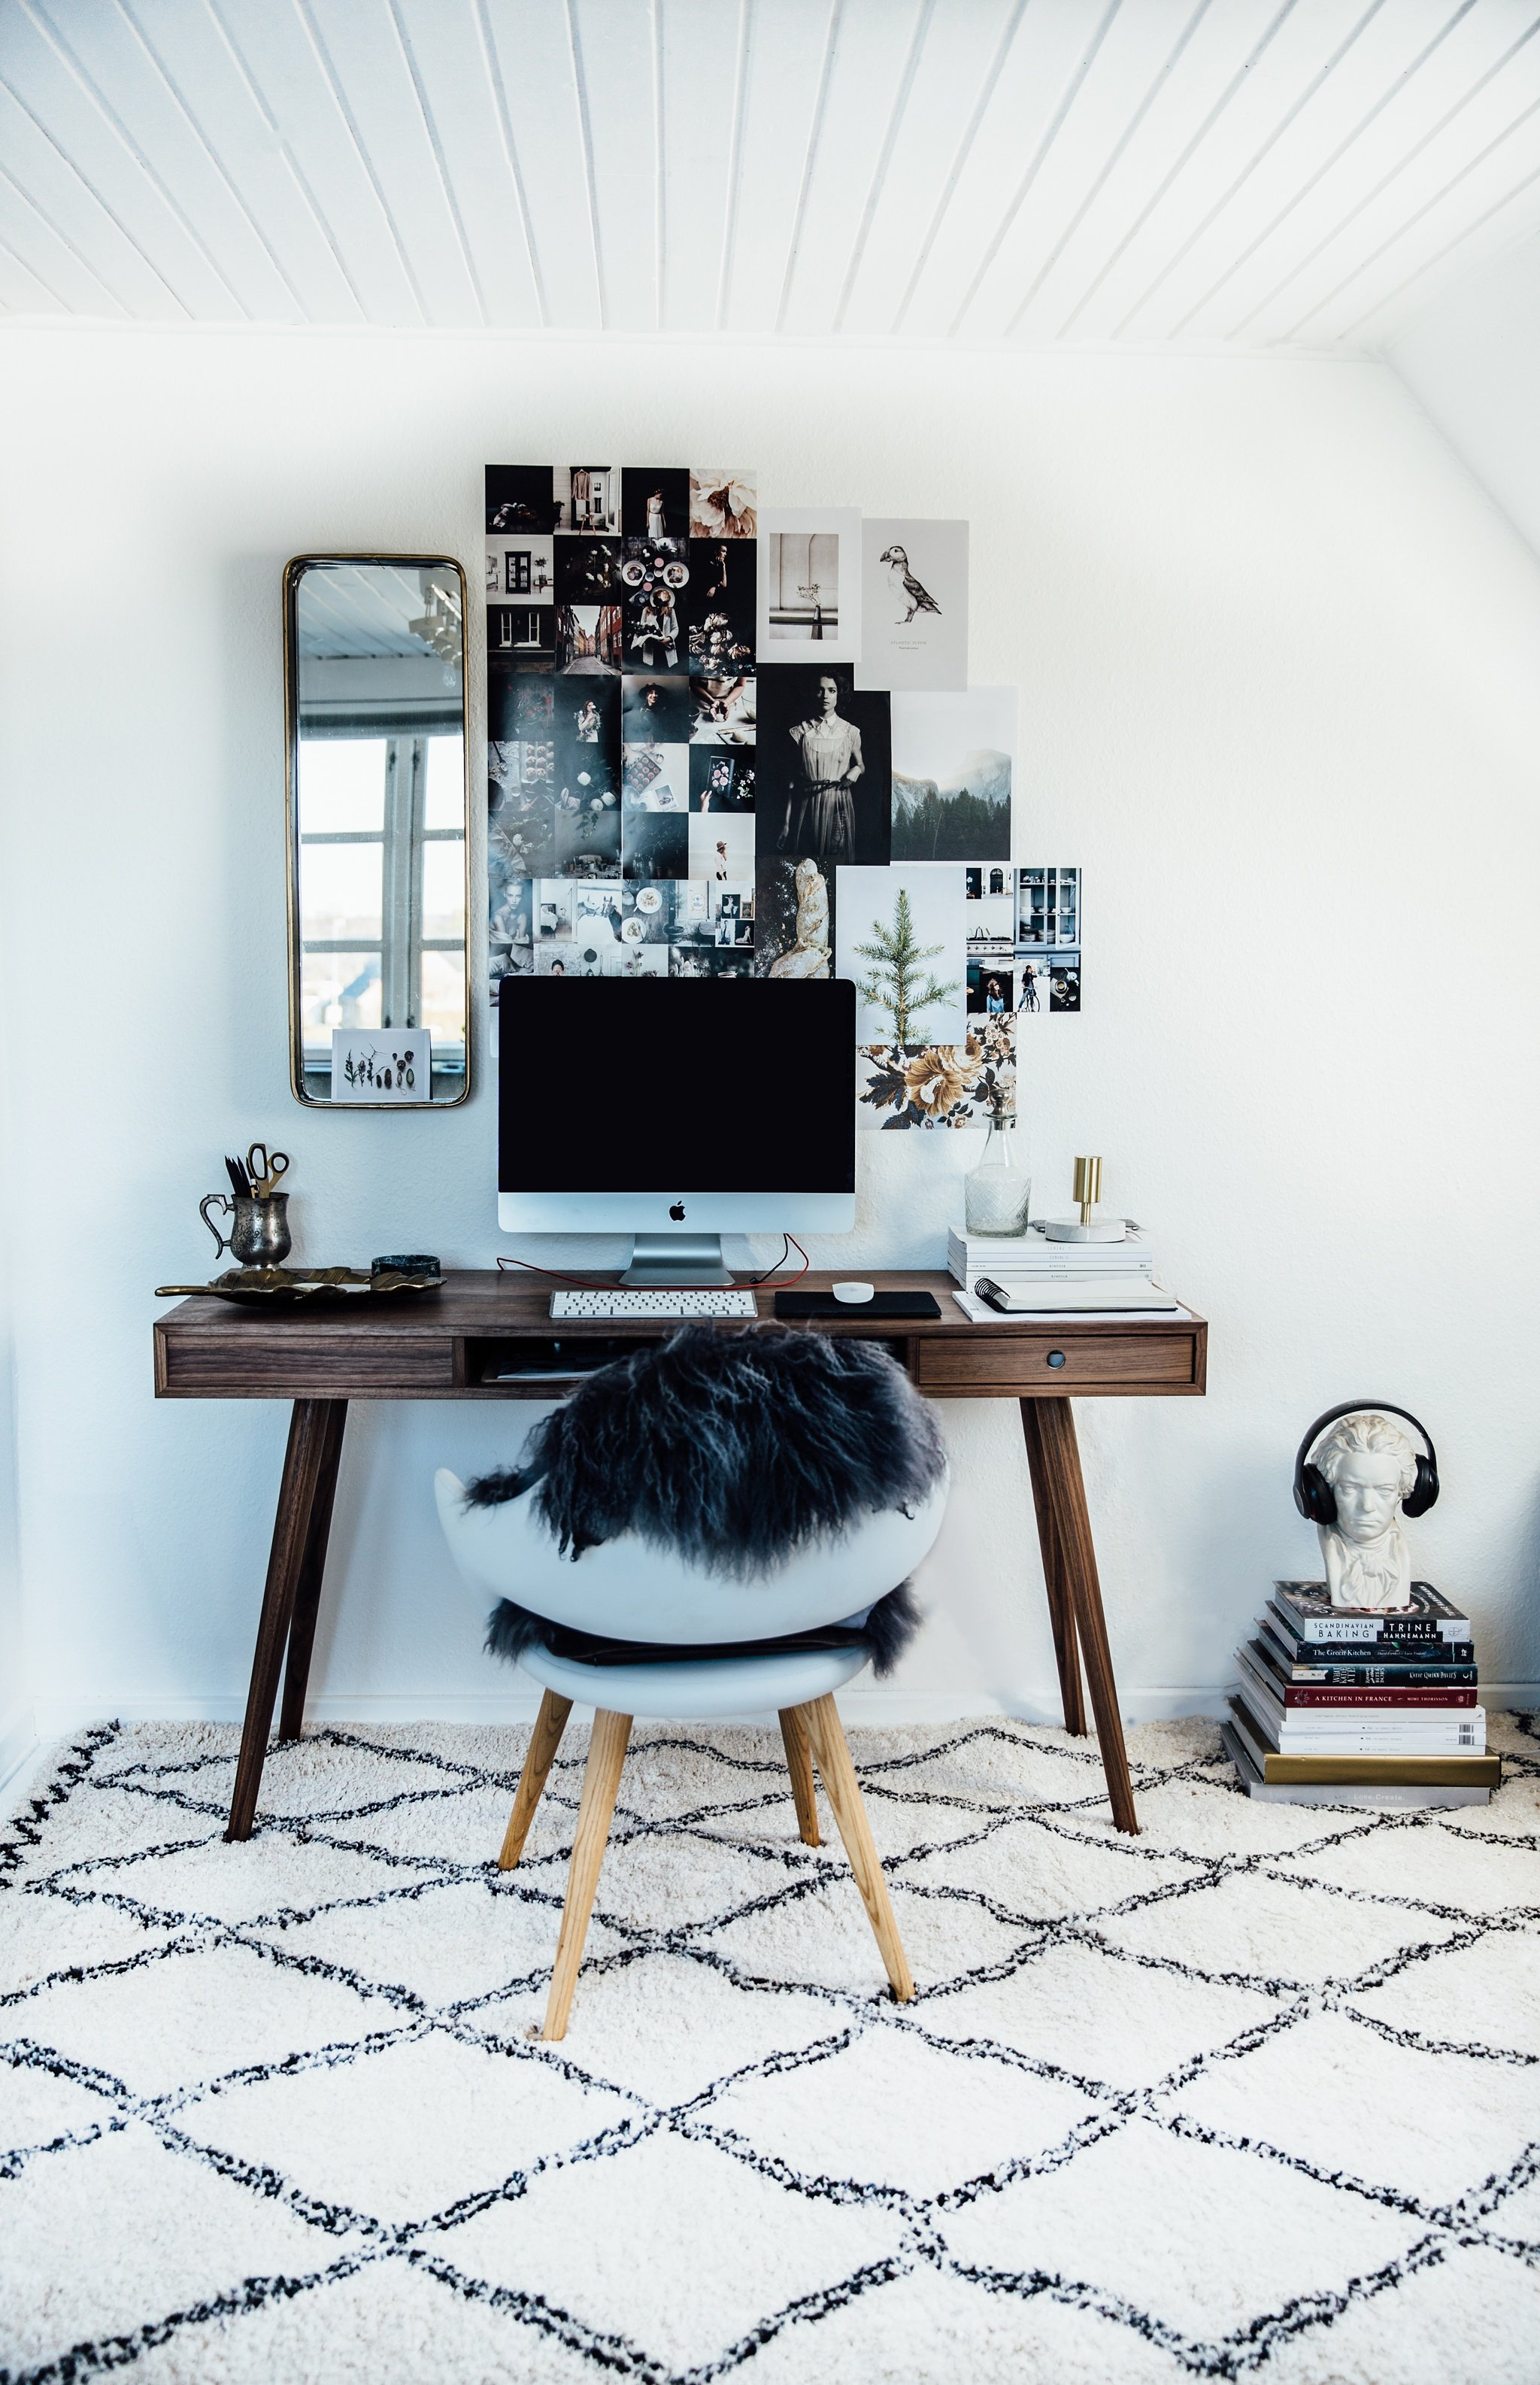 How To Design Your Creative Workspace